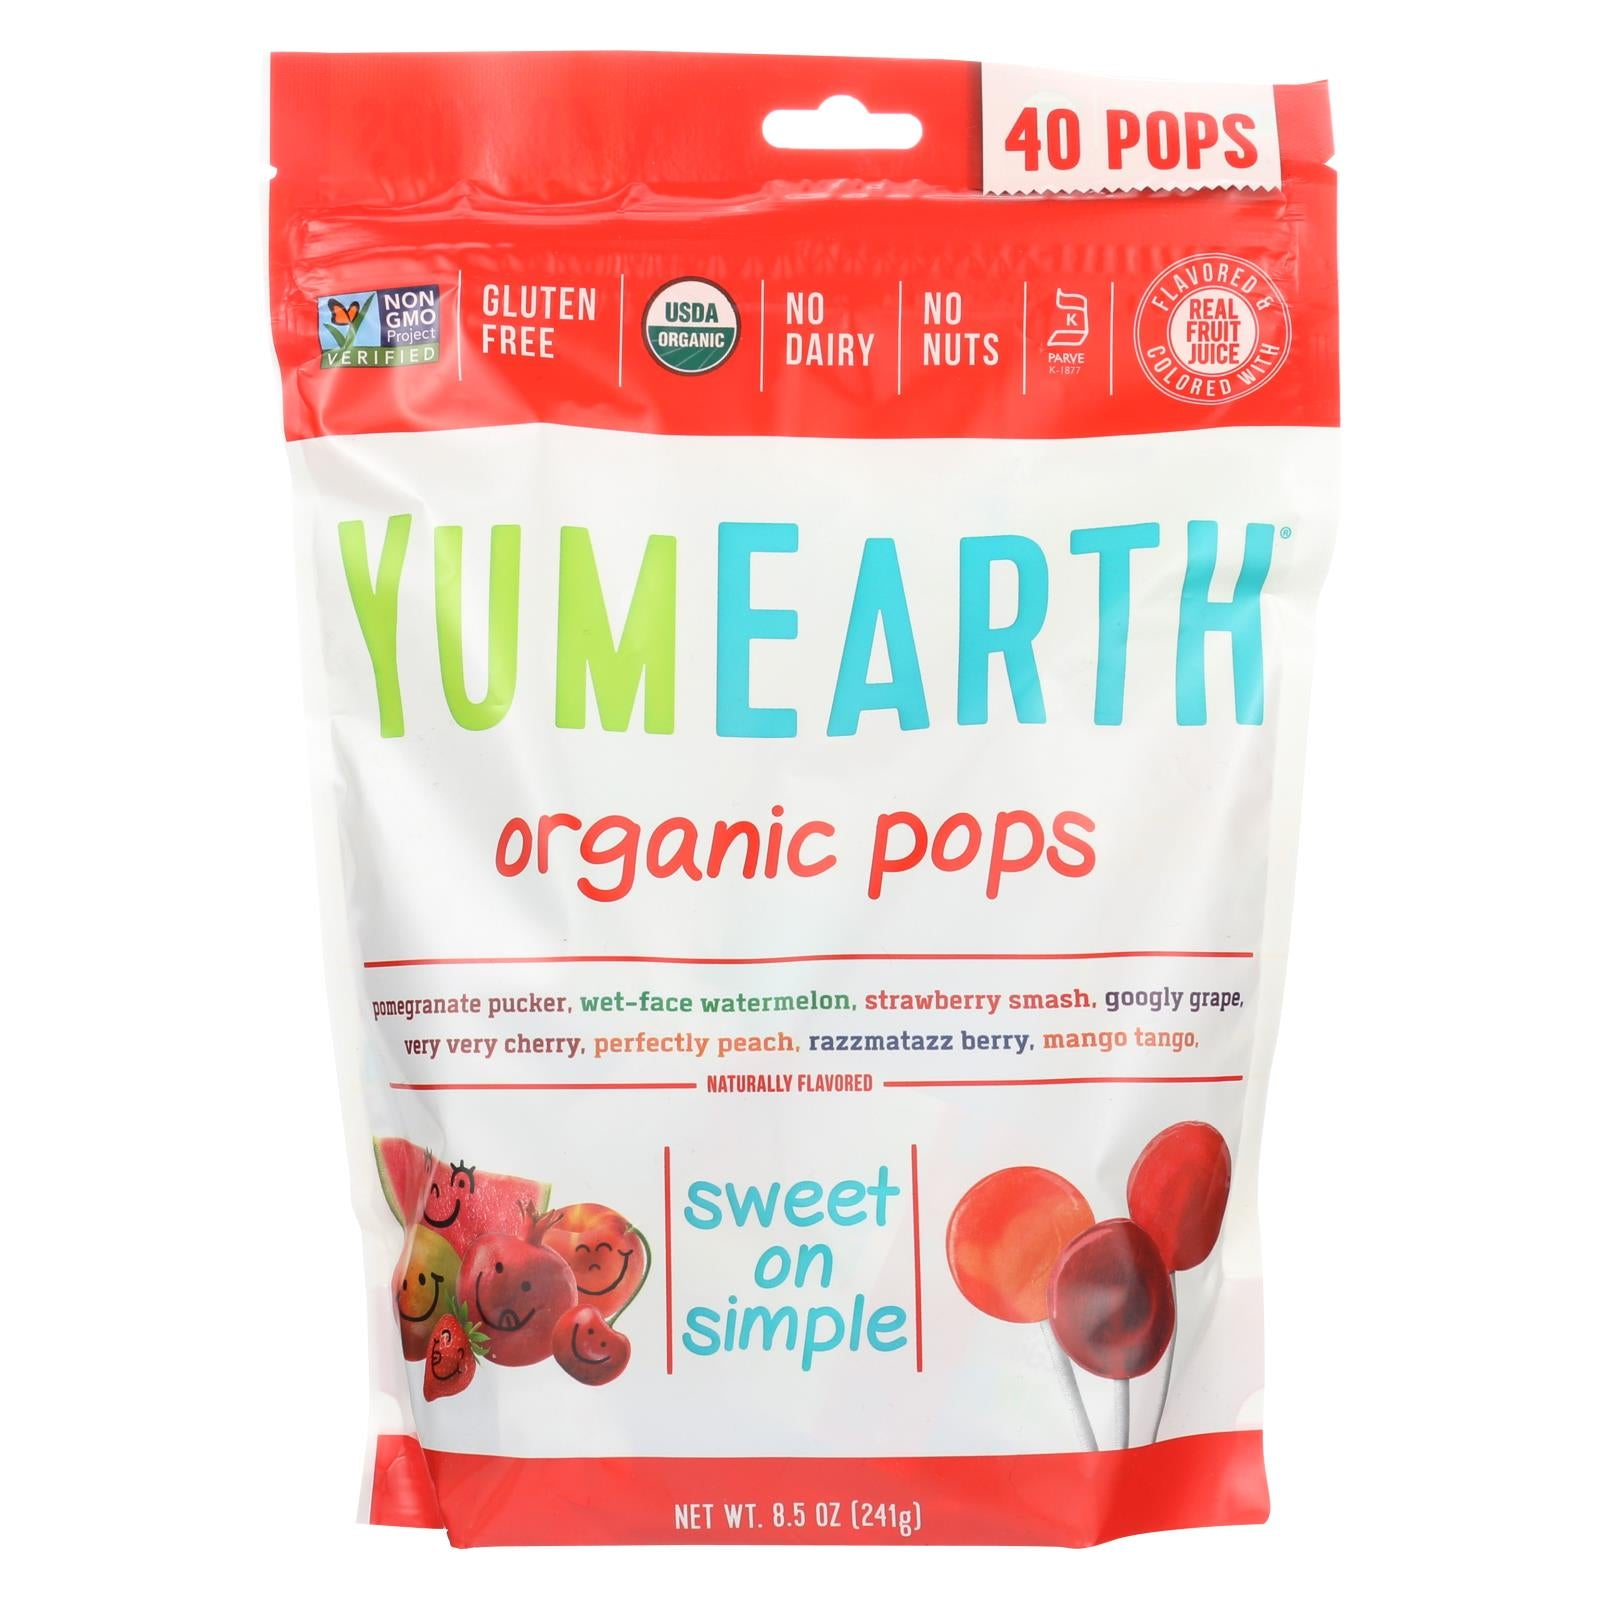 Buy Yummy Earth Organics Lollipops - Organic Pops - 40 Plus - Assorted - 8.5 oz - Case of 12 - Candy and Chewing Gum from Veroeco.com